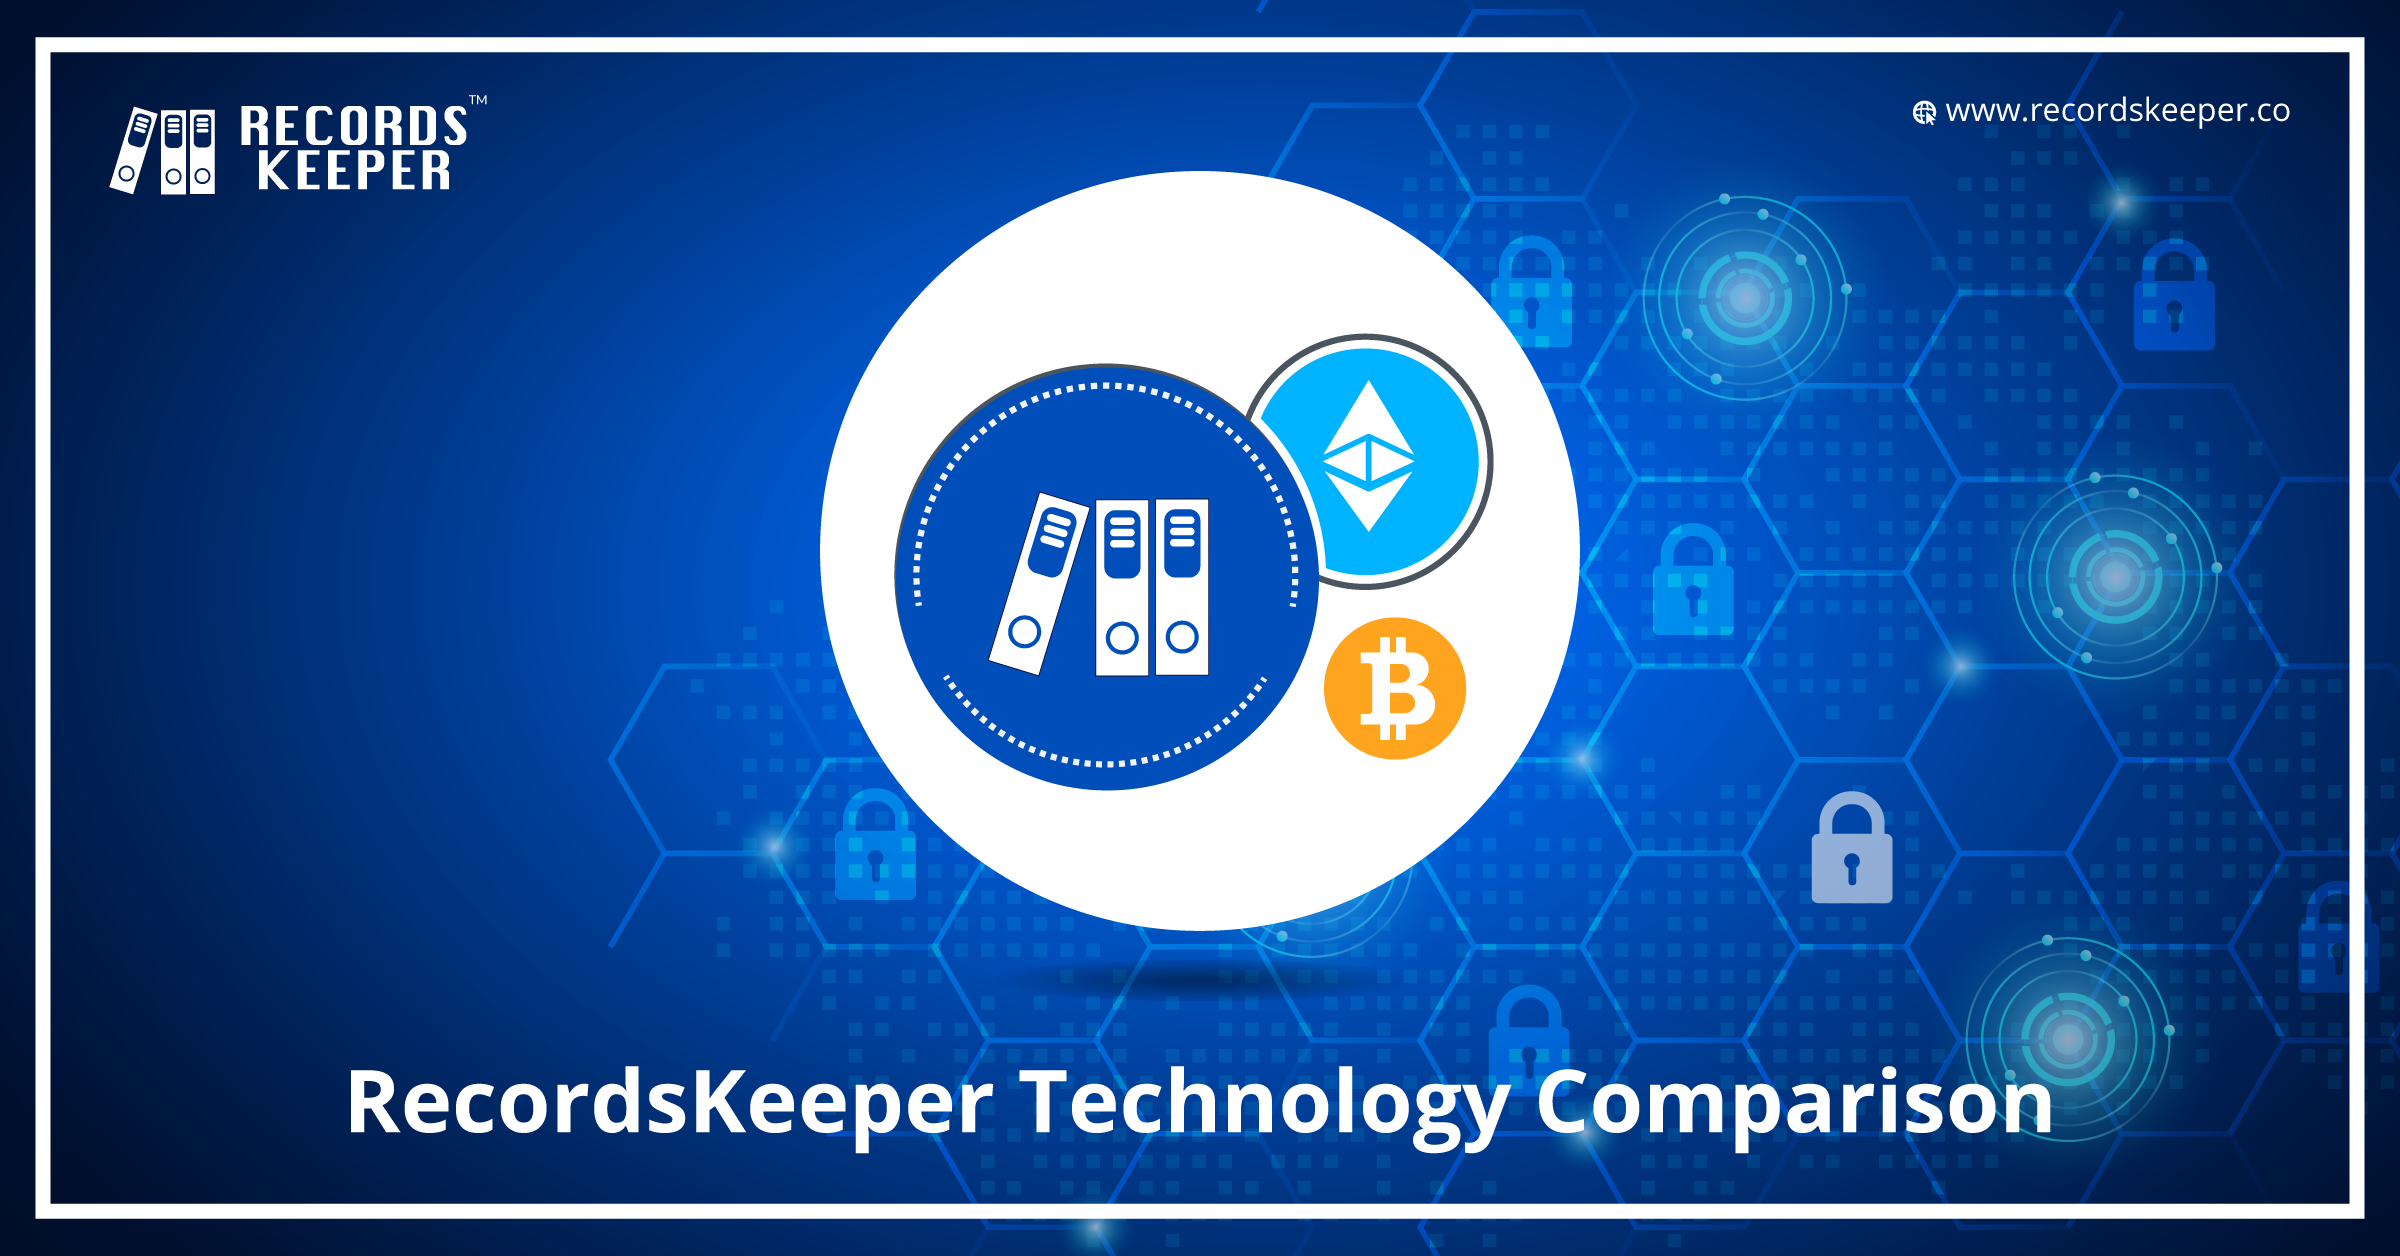 RecordsKeeper Technology Comparison